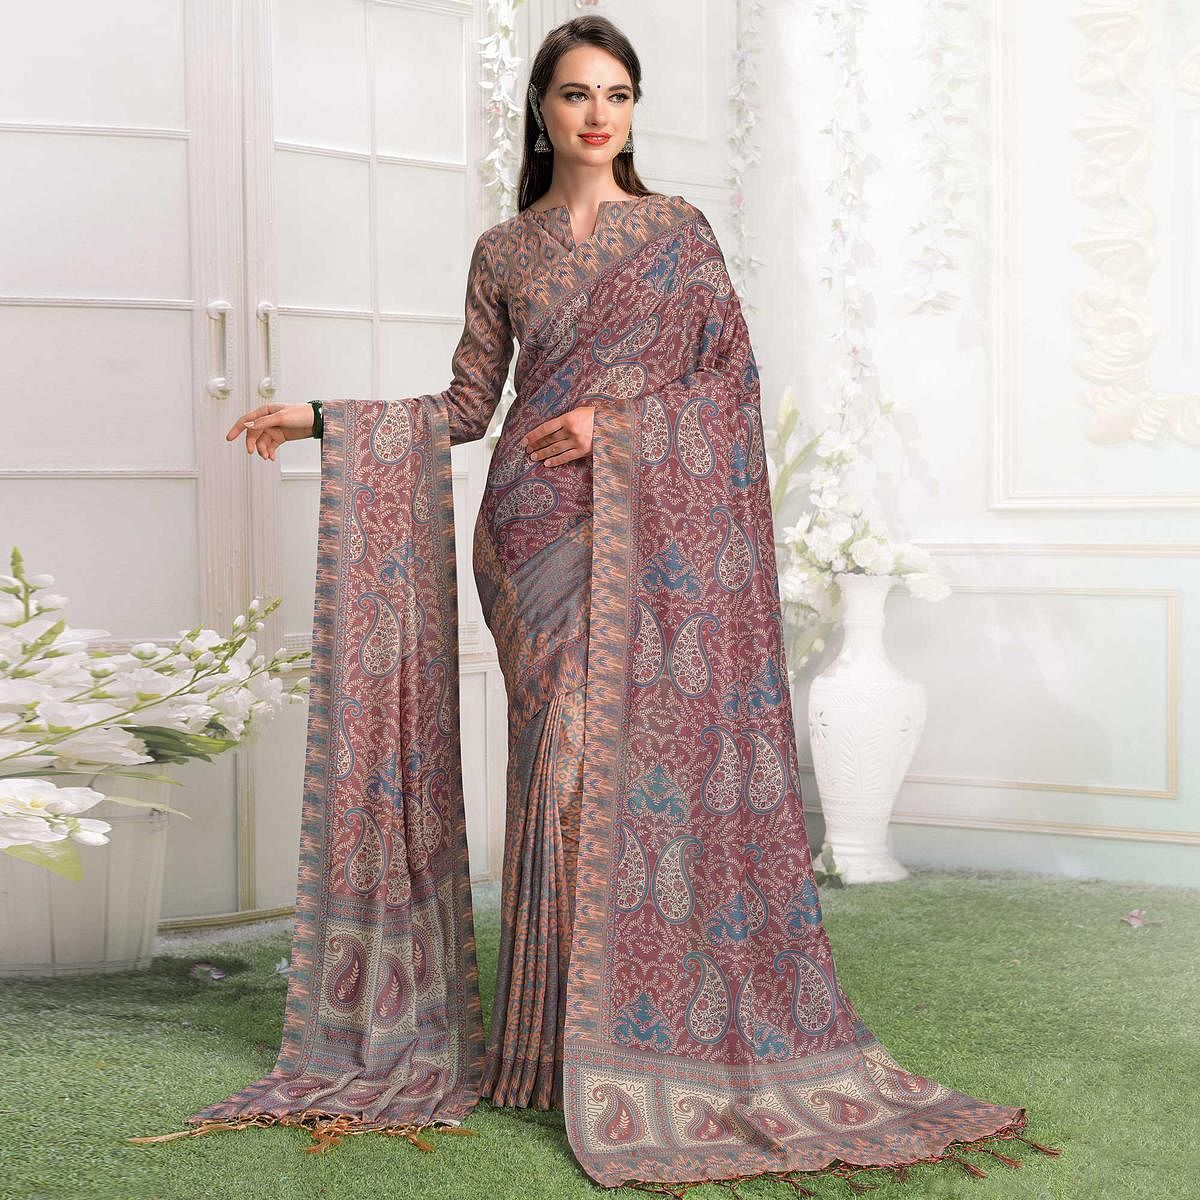 Starring Peach-Light Wine Colored Casual Printed Pashmina Silk Saree With Stole